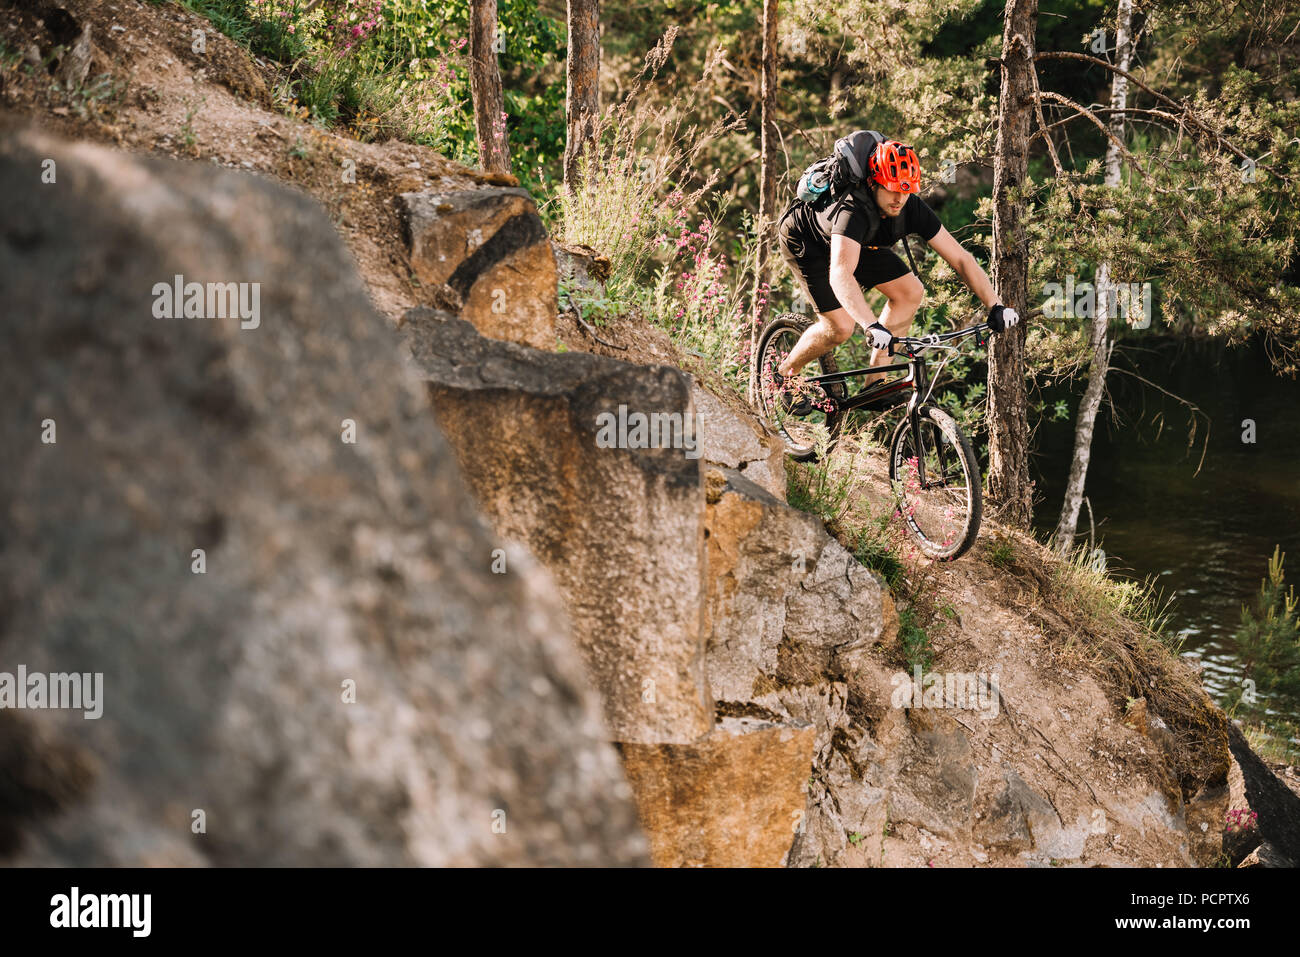 young trial biker riding downhill outdoors in pine forest - Stock Image